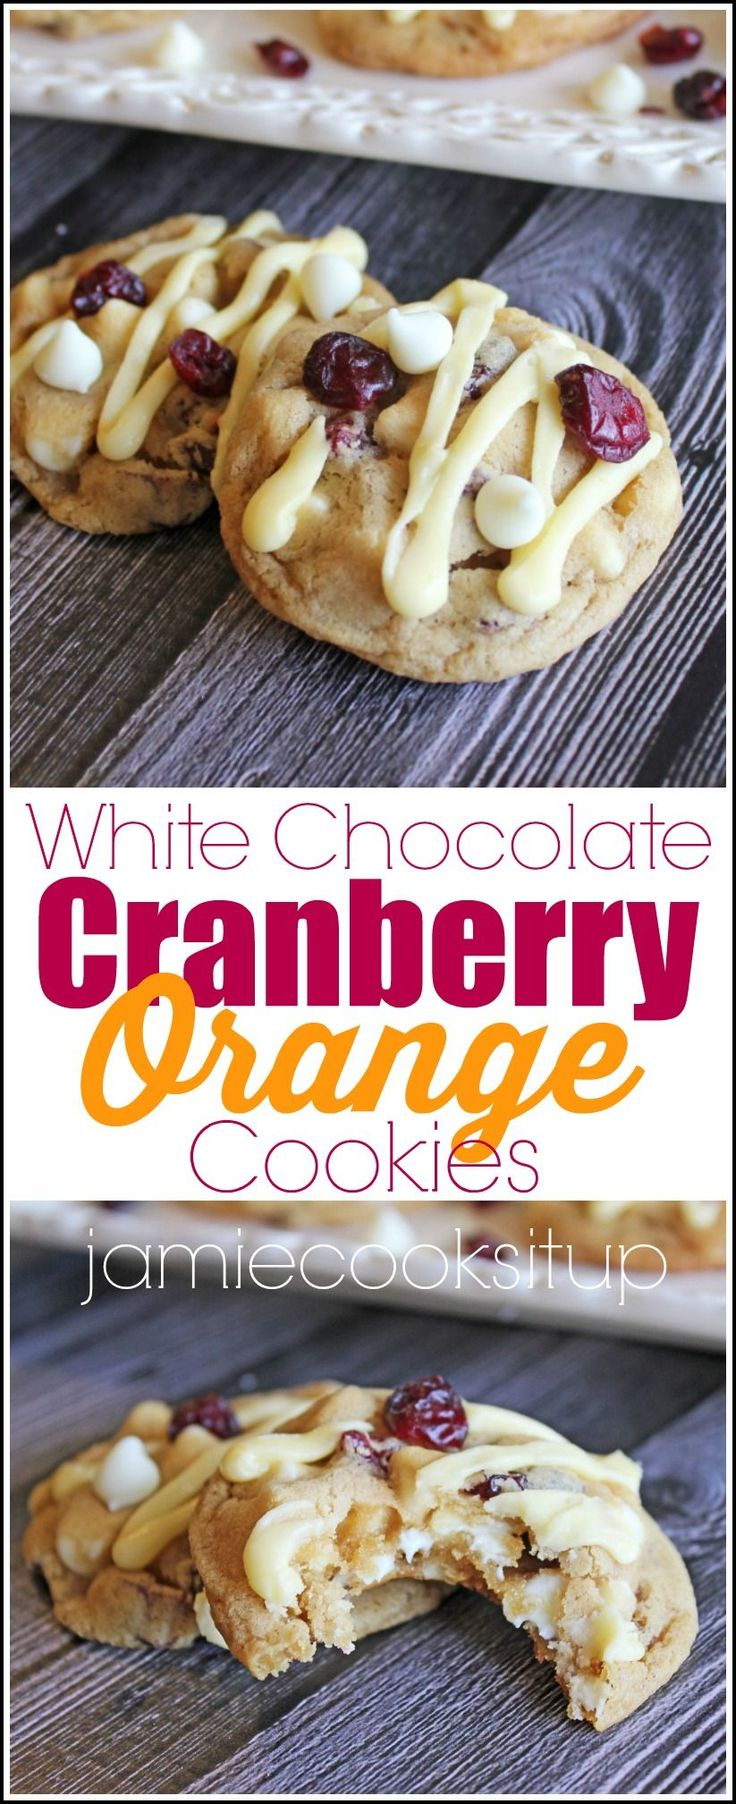 white-chocolate-cranberry-orange-cookies-from-jamie-cooks-it-up